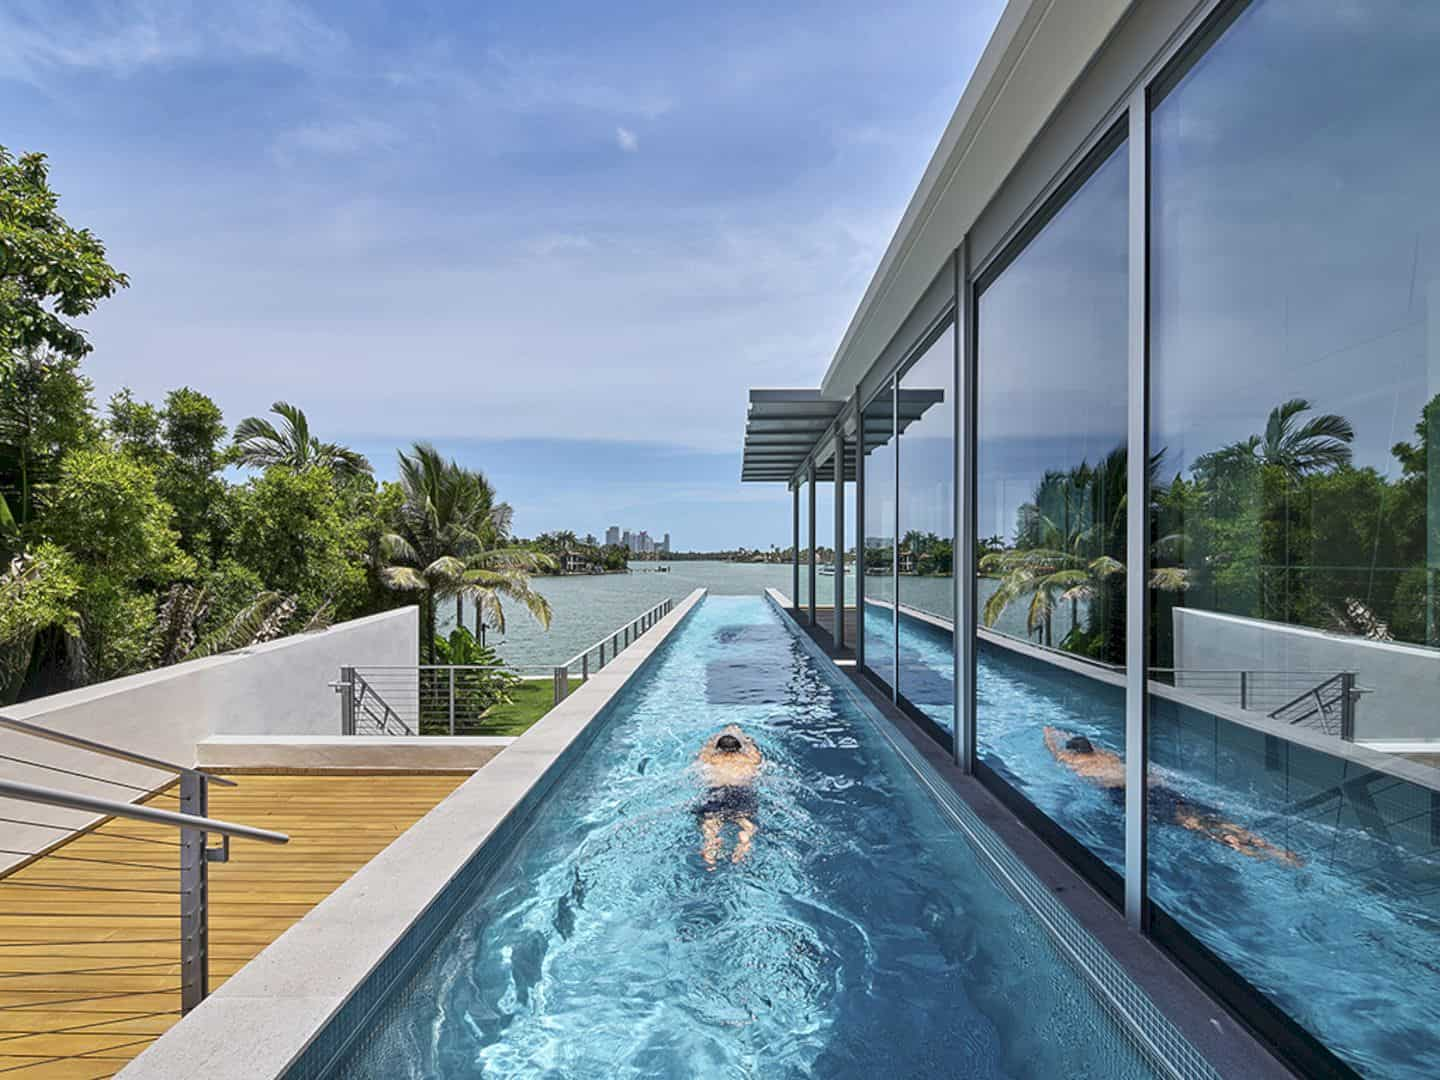 San Marino Residence: A Visceral Oasis within A Tropical Landscape for An Indoor-Outdoor Experience